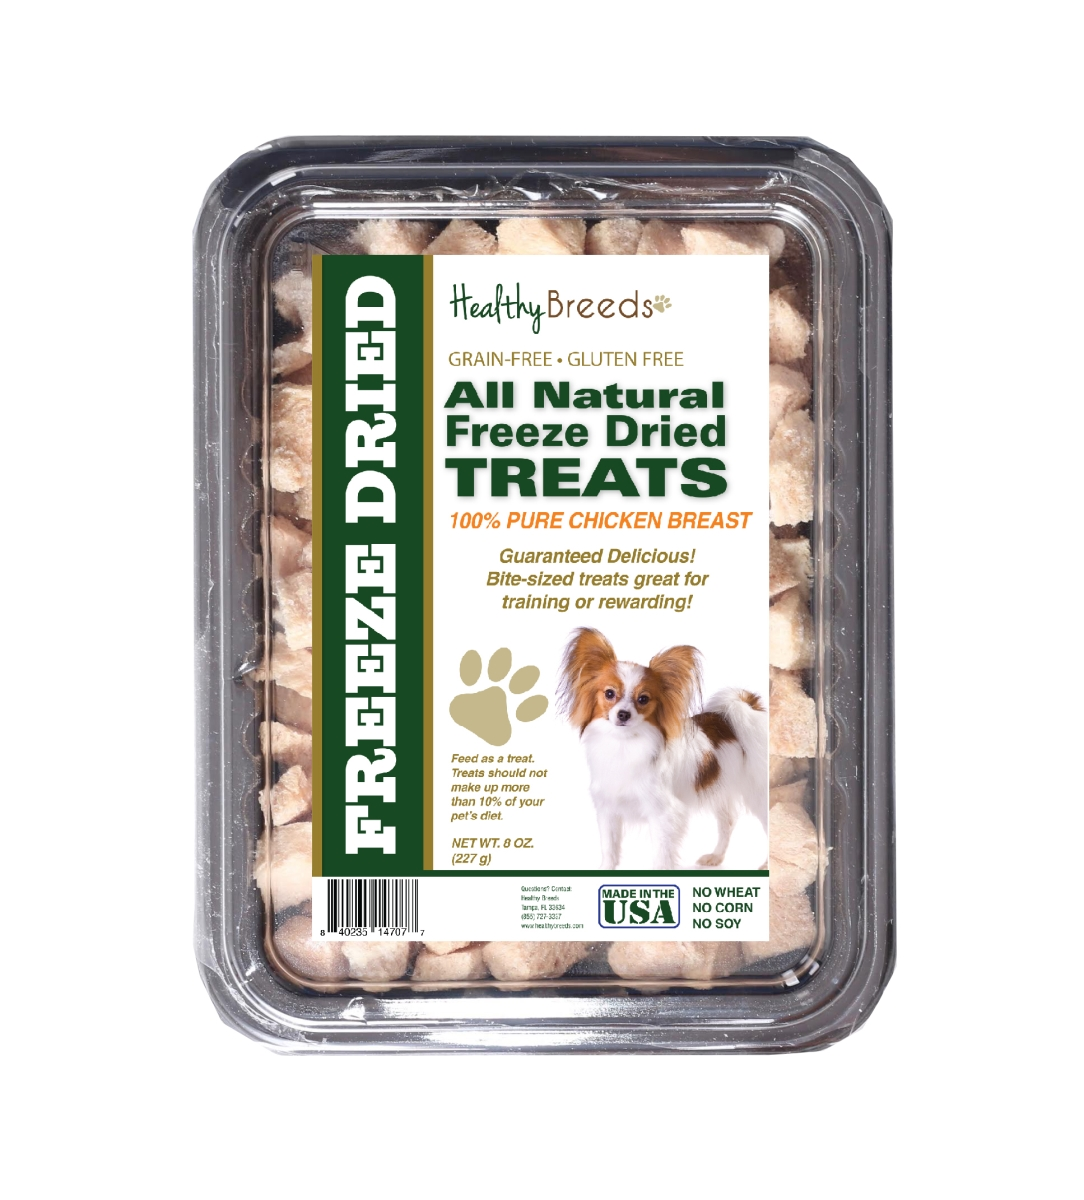 Healthy Breeds 840235147077 8 oz Papillon All Natural Freeze Dried Treats Chicken Breast